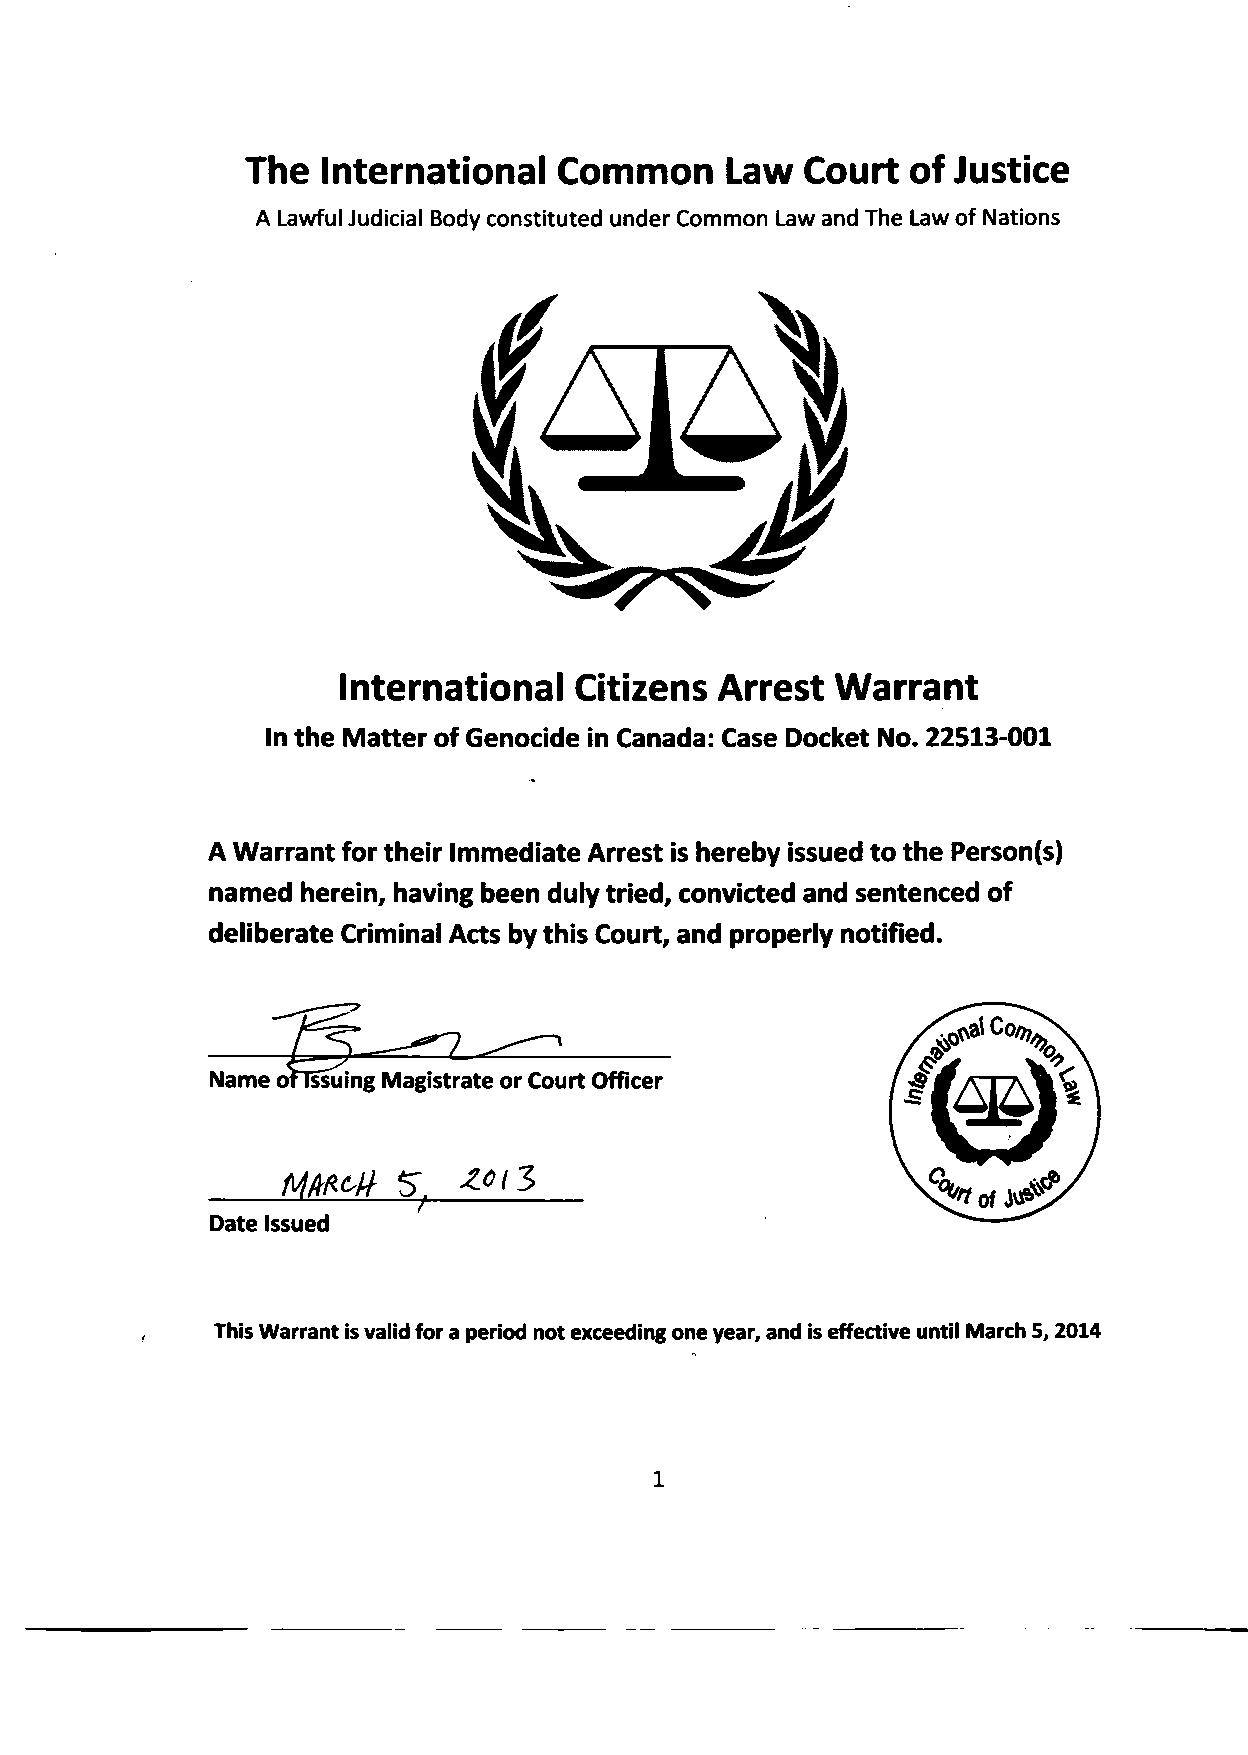 Search Warrant Template 41271 Timehd